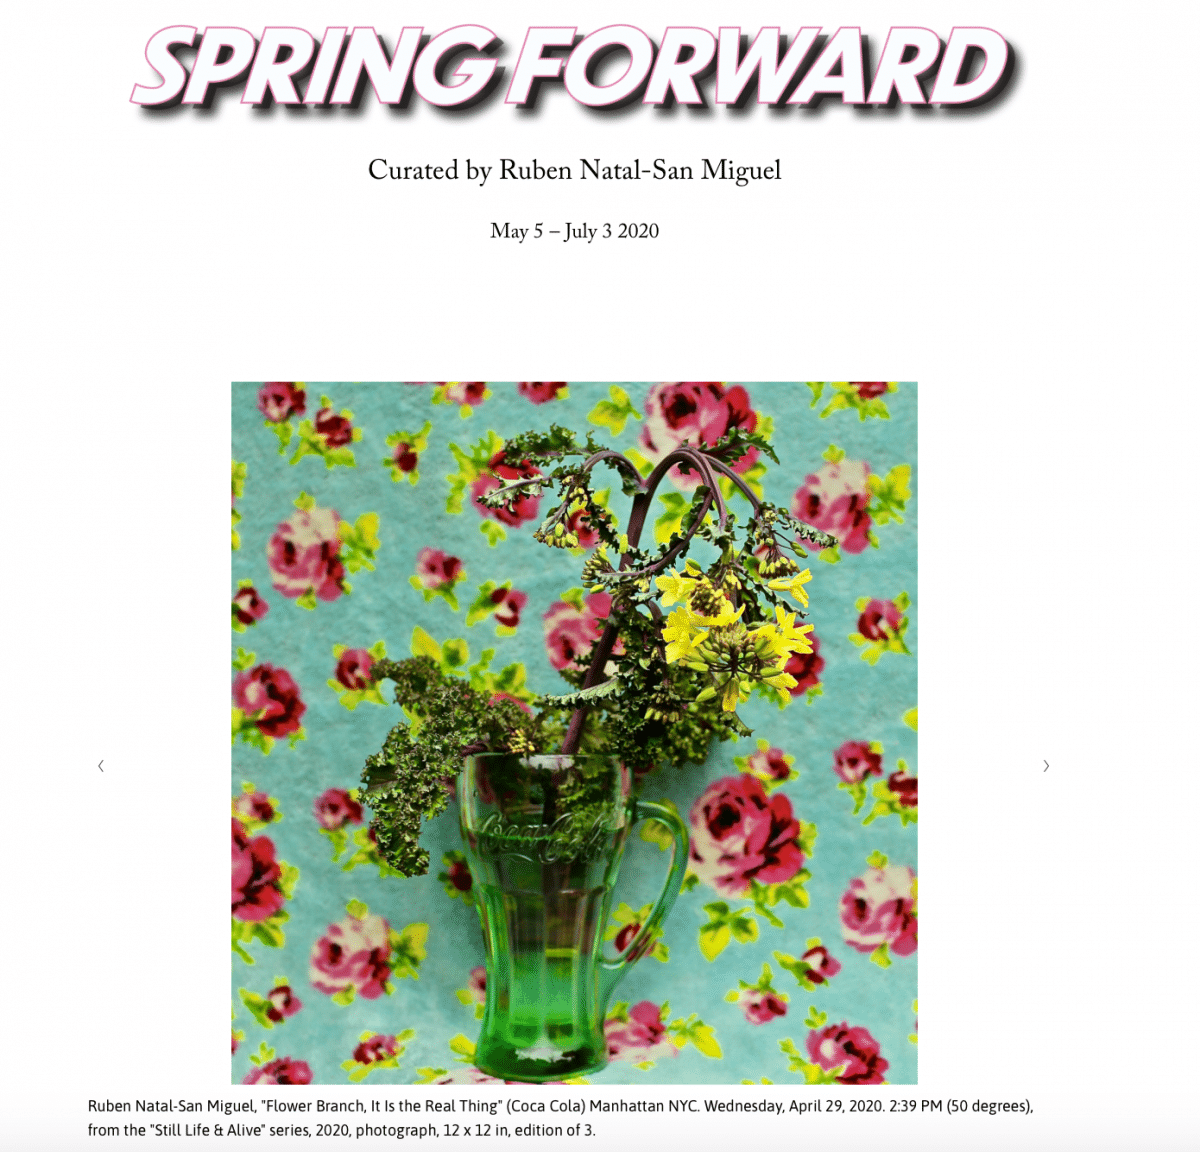 The Arcade Project and Ruben Natal-San Miguel's Spring Forward